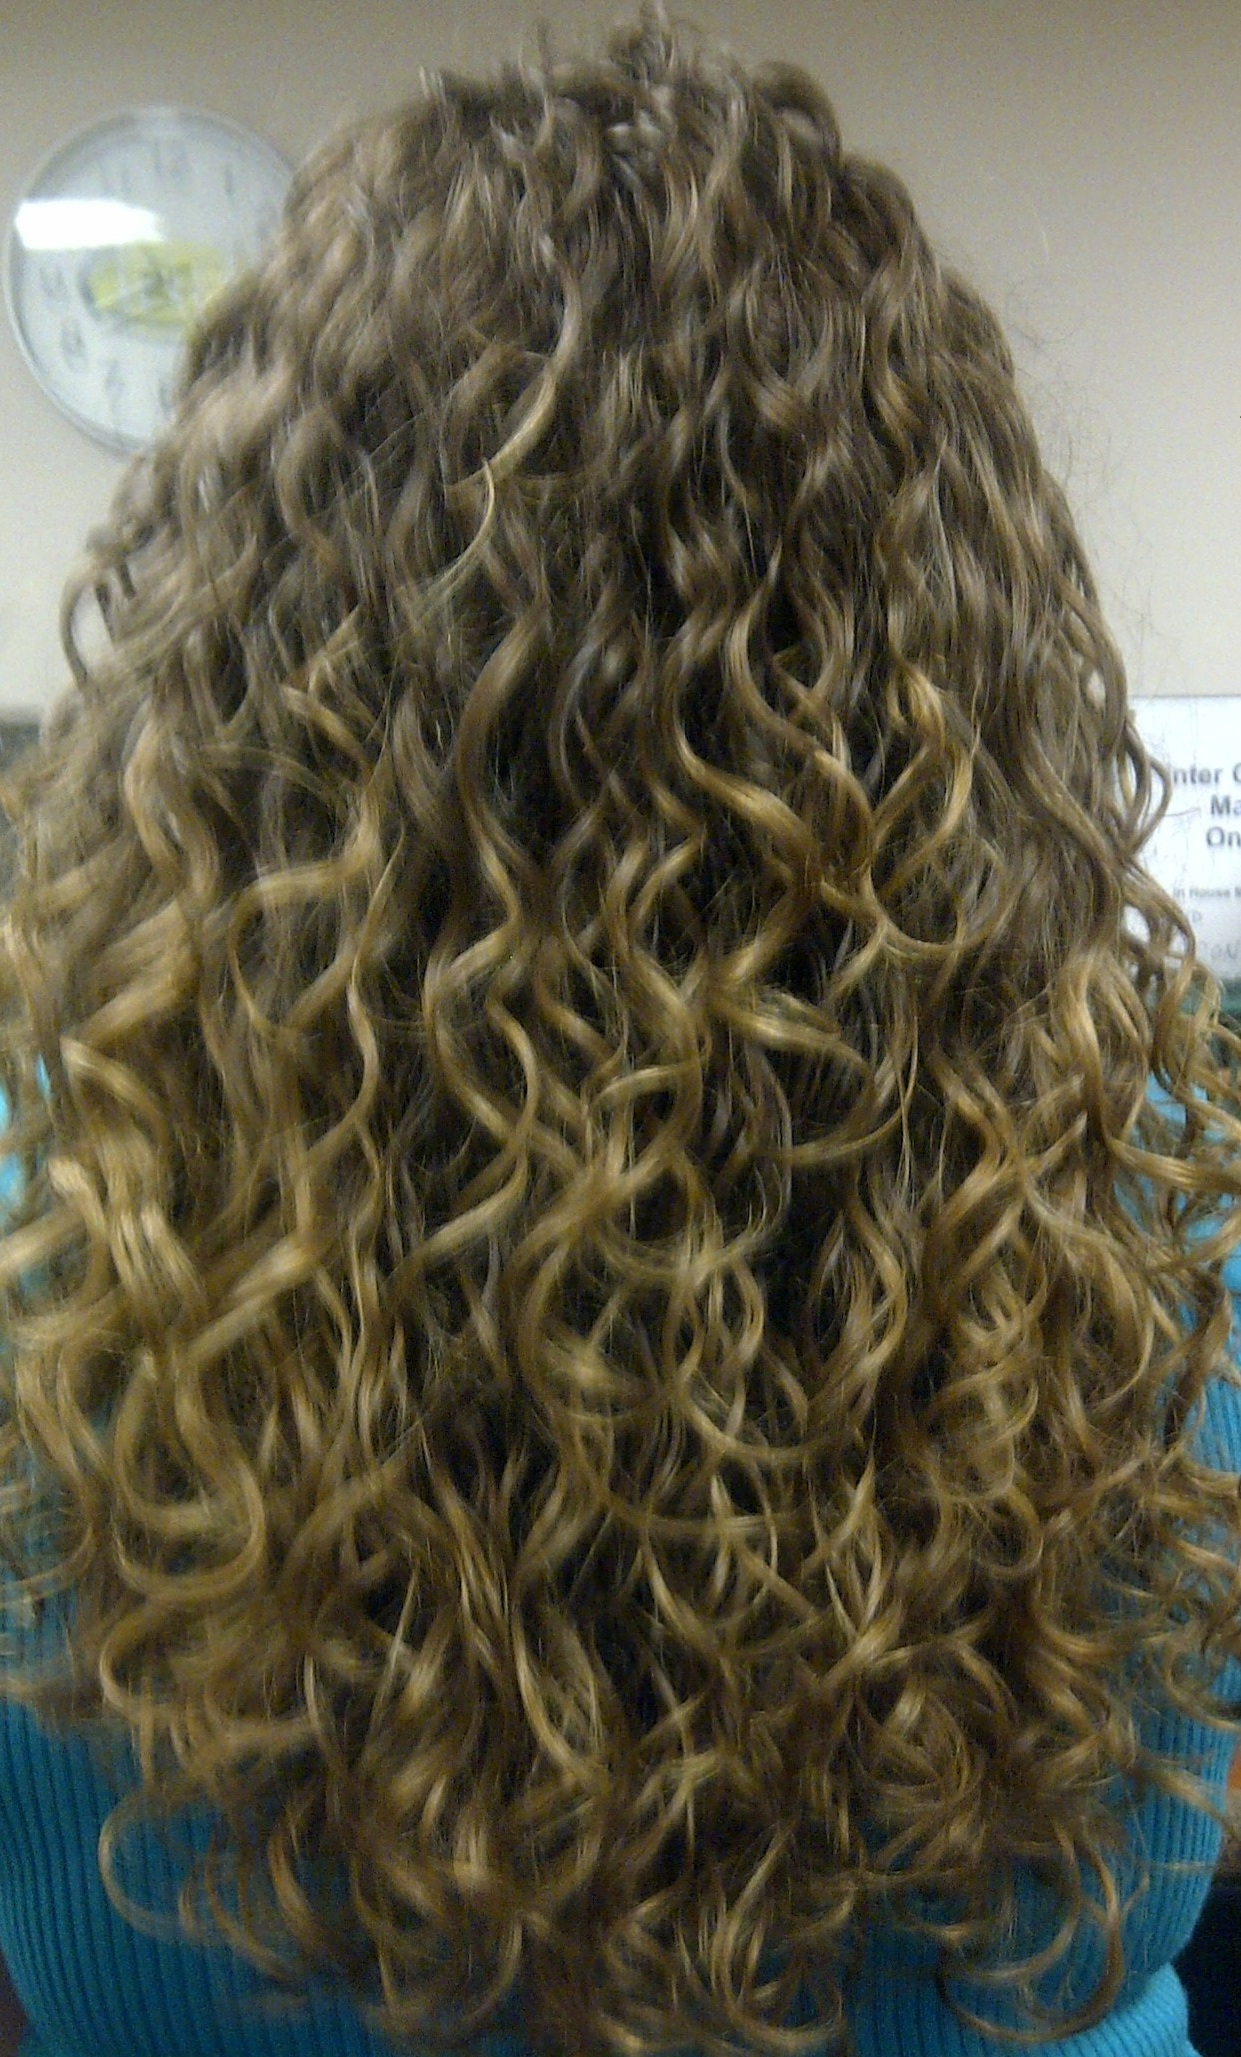 Good curly hair shampoo and conditioner